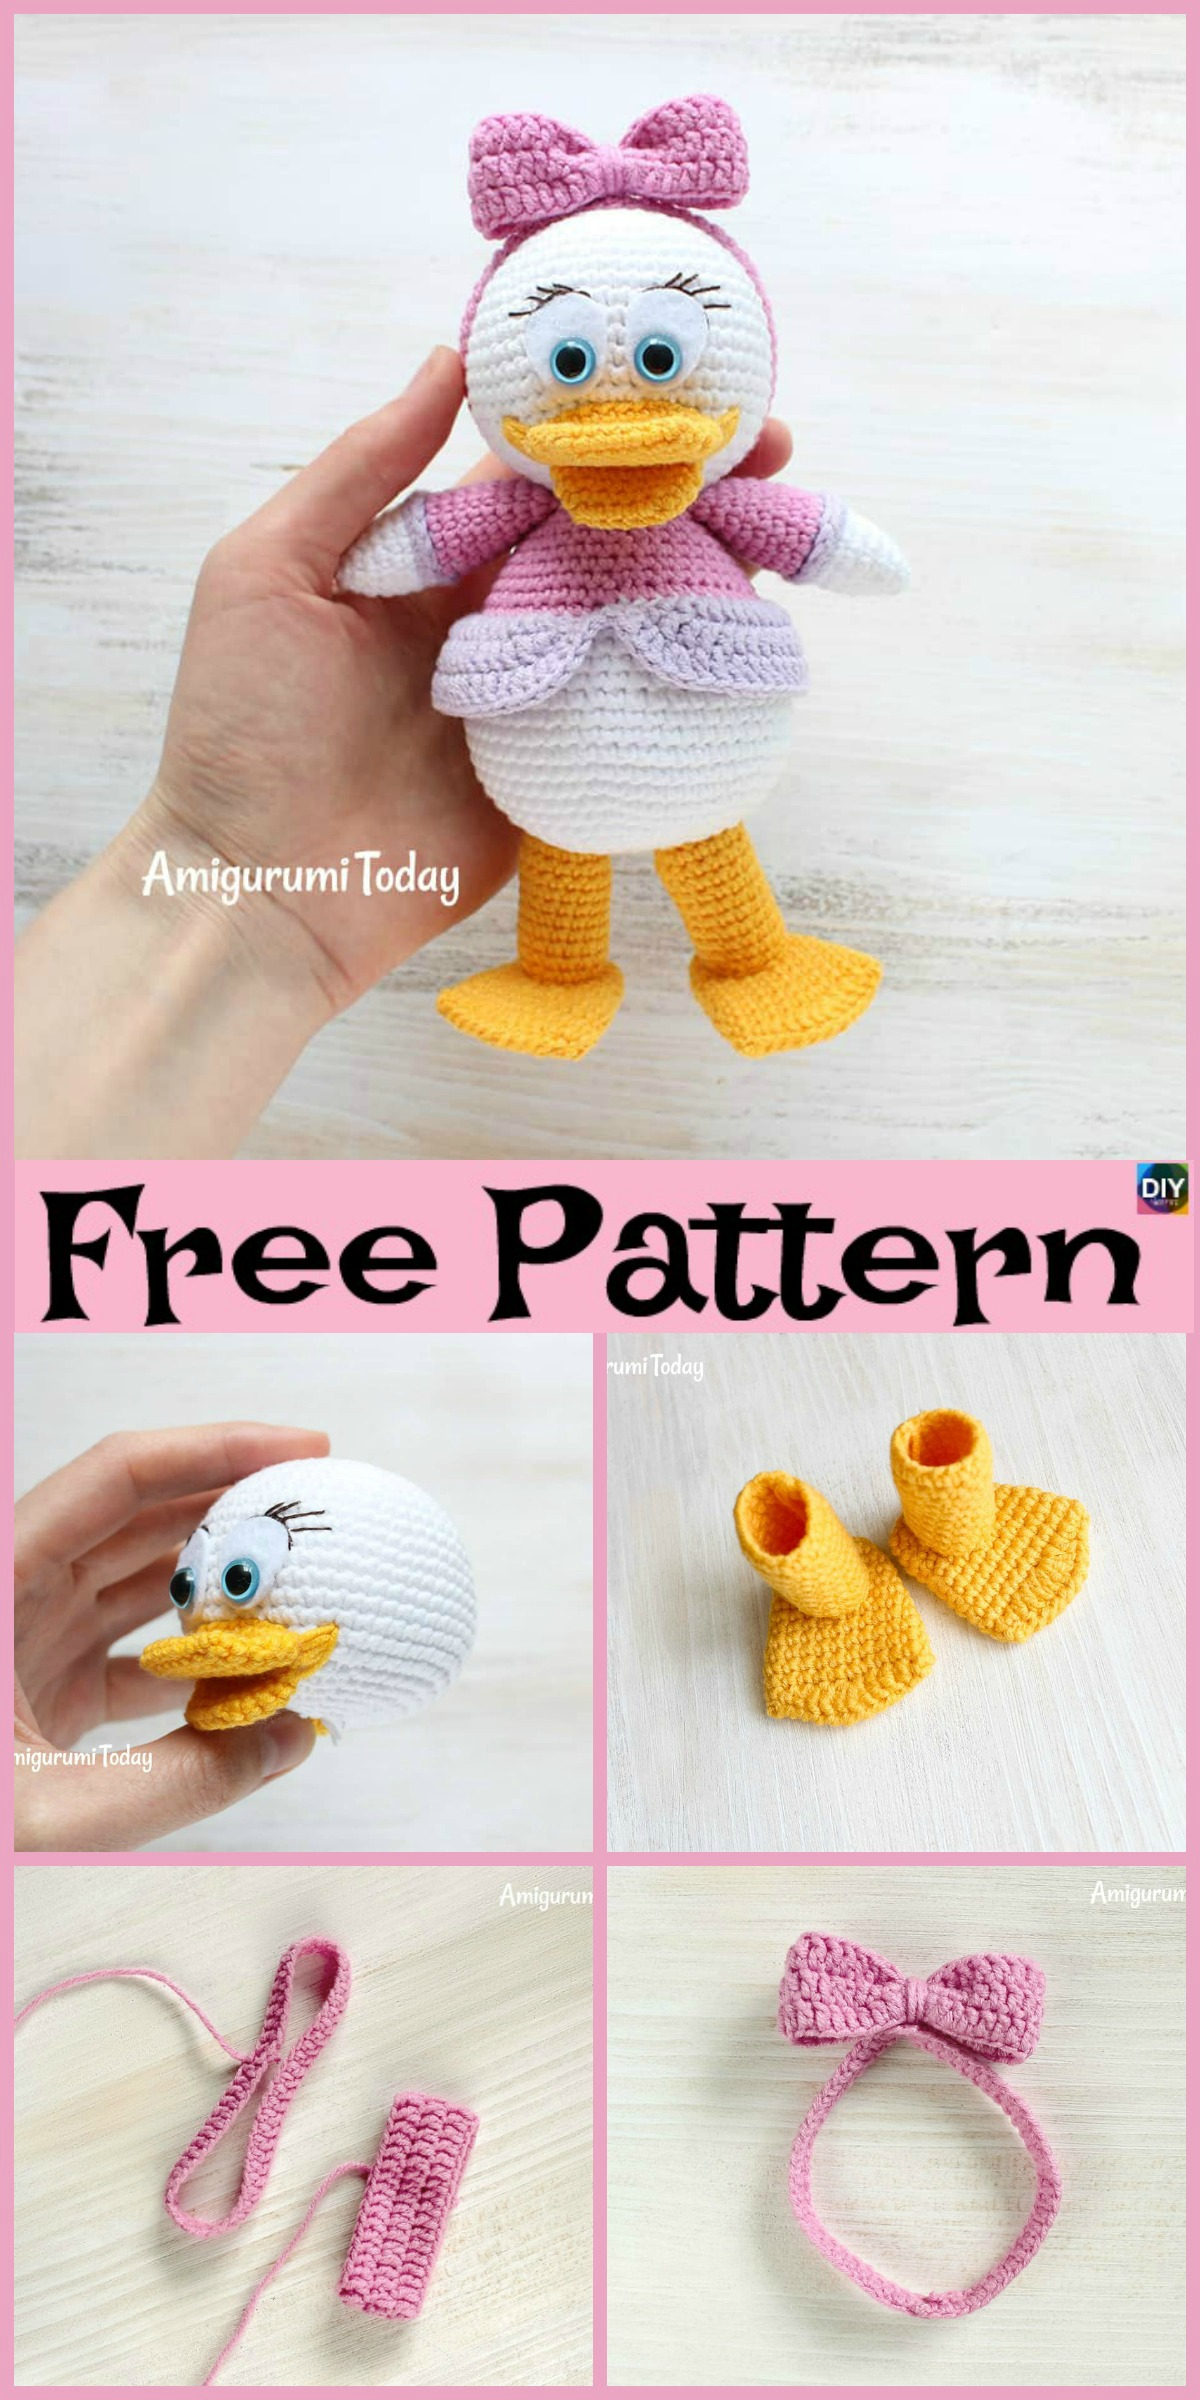 Amigurumi Today - Page 2 of 11 - Free amigurumi patterns and ... | 2400x1200